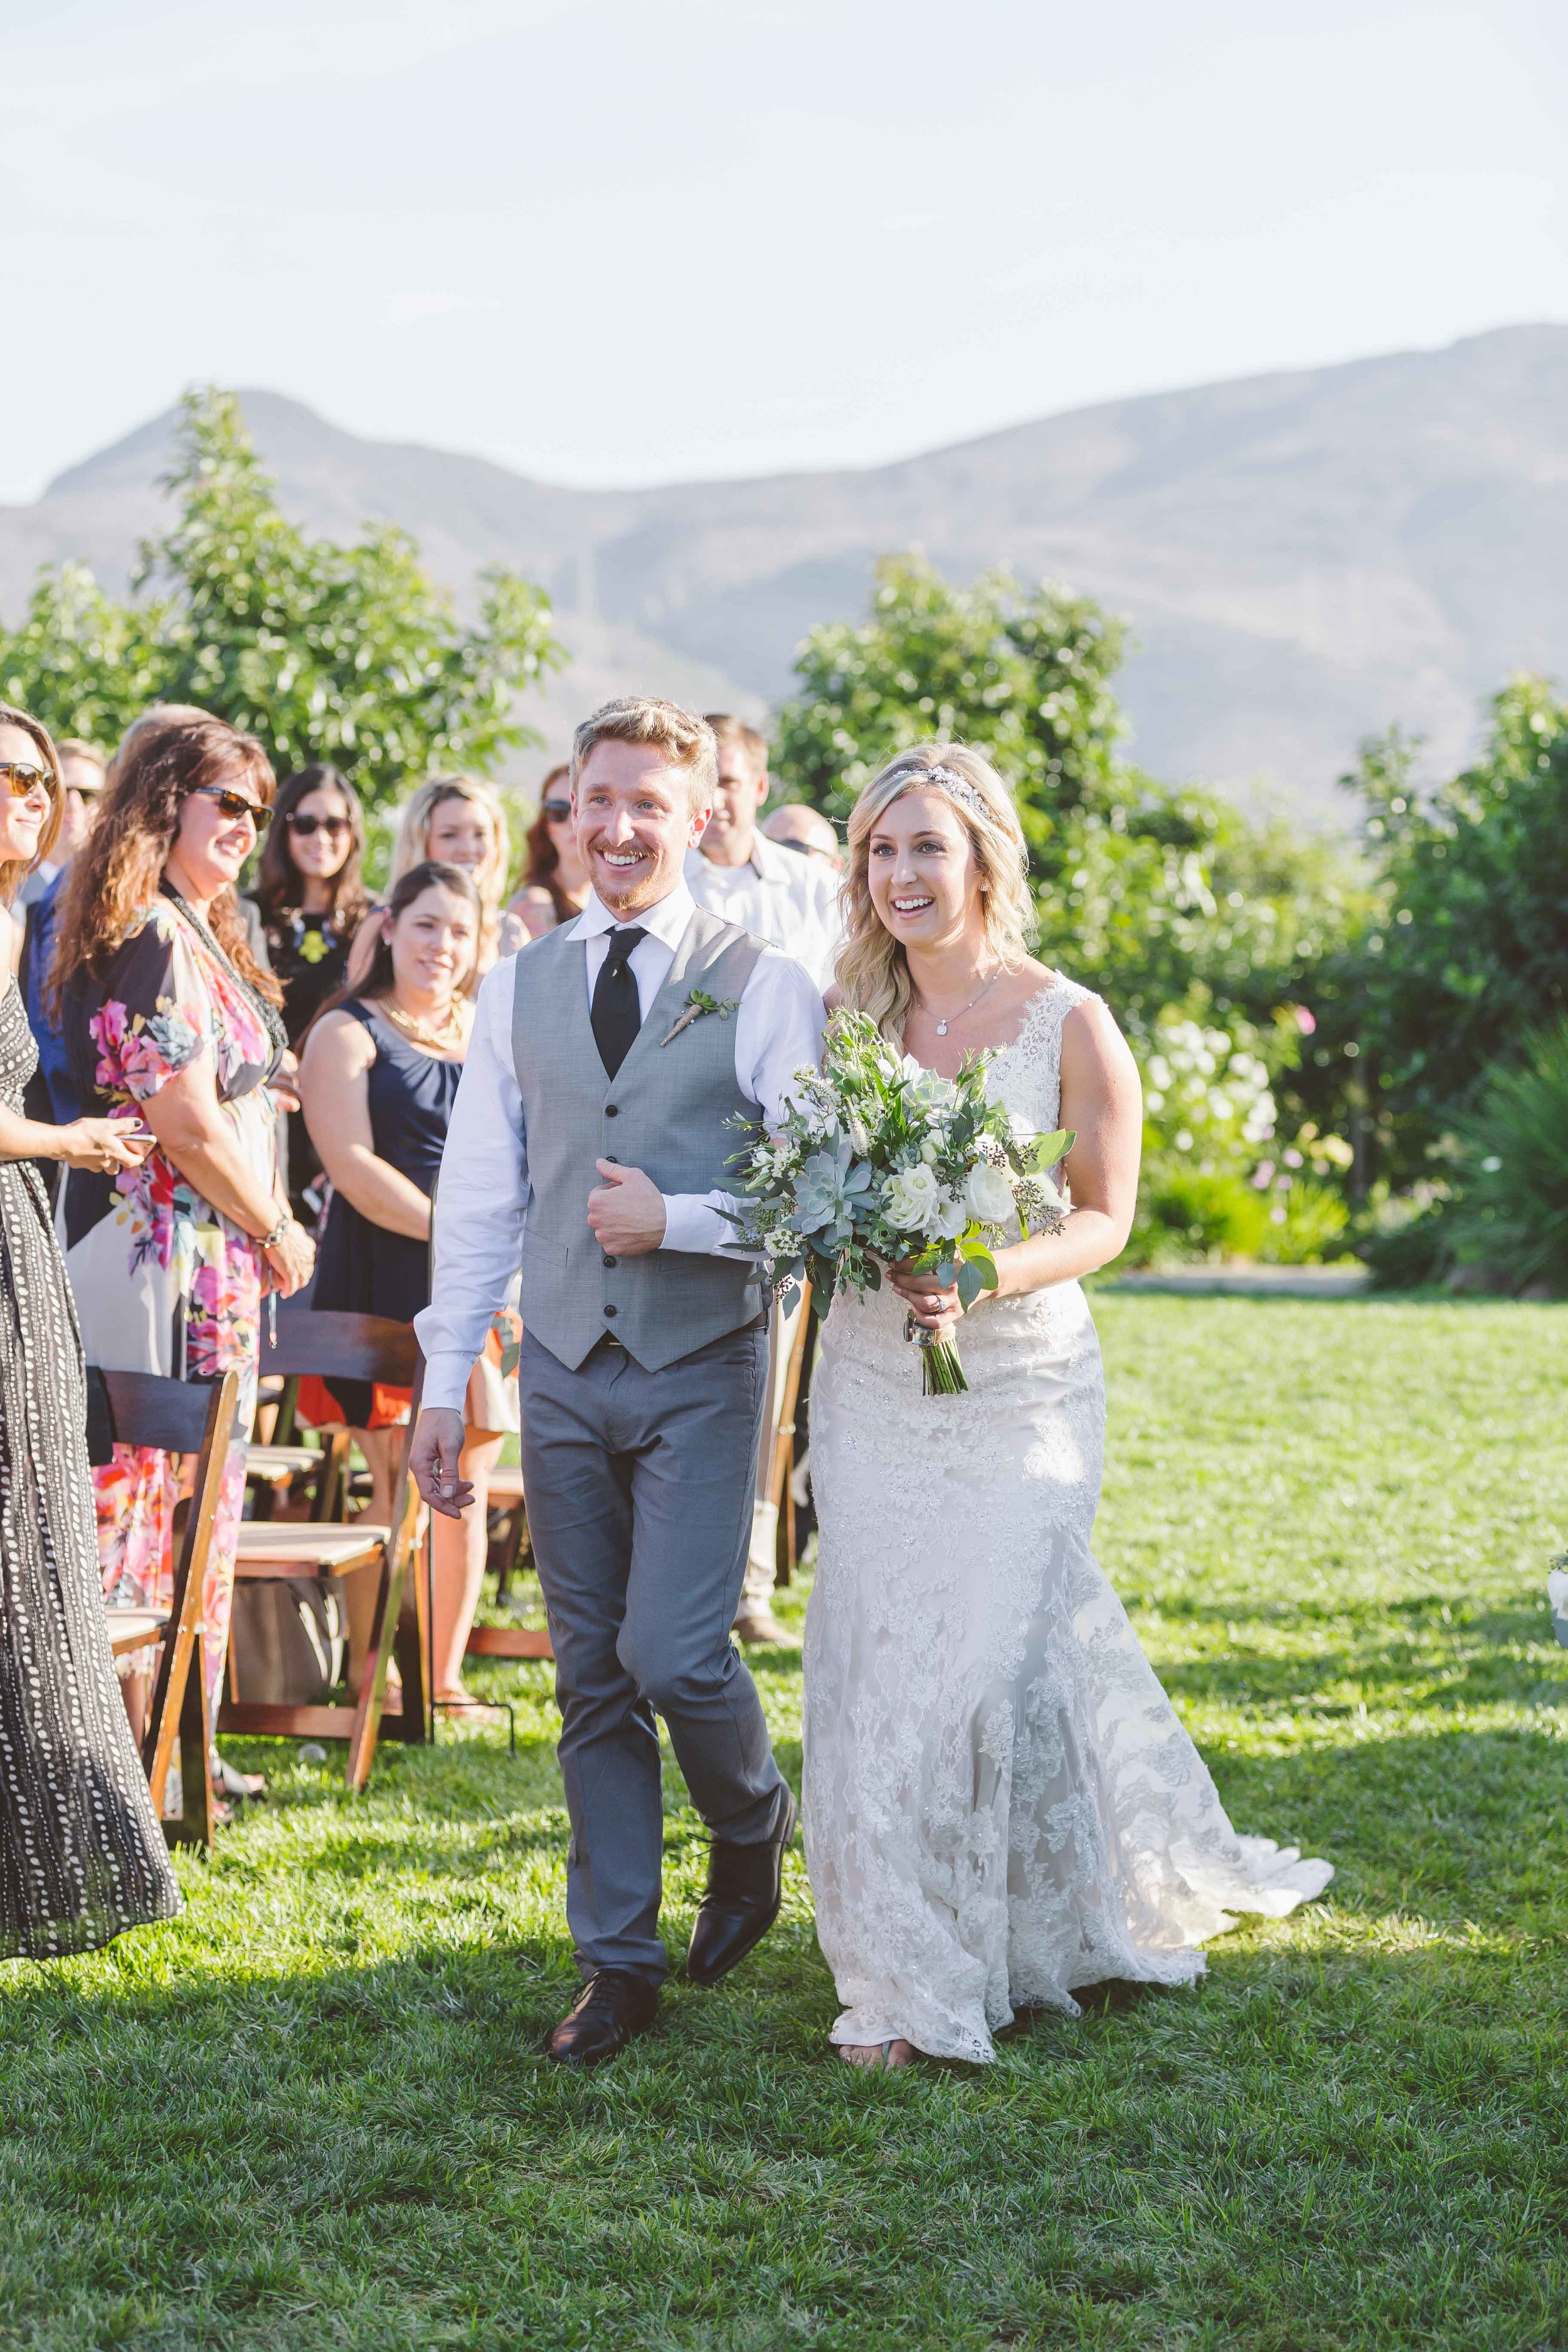 2015-Perkinson-Wedding-GerrysRanch-0134-web.jpg